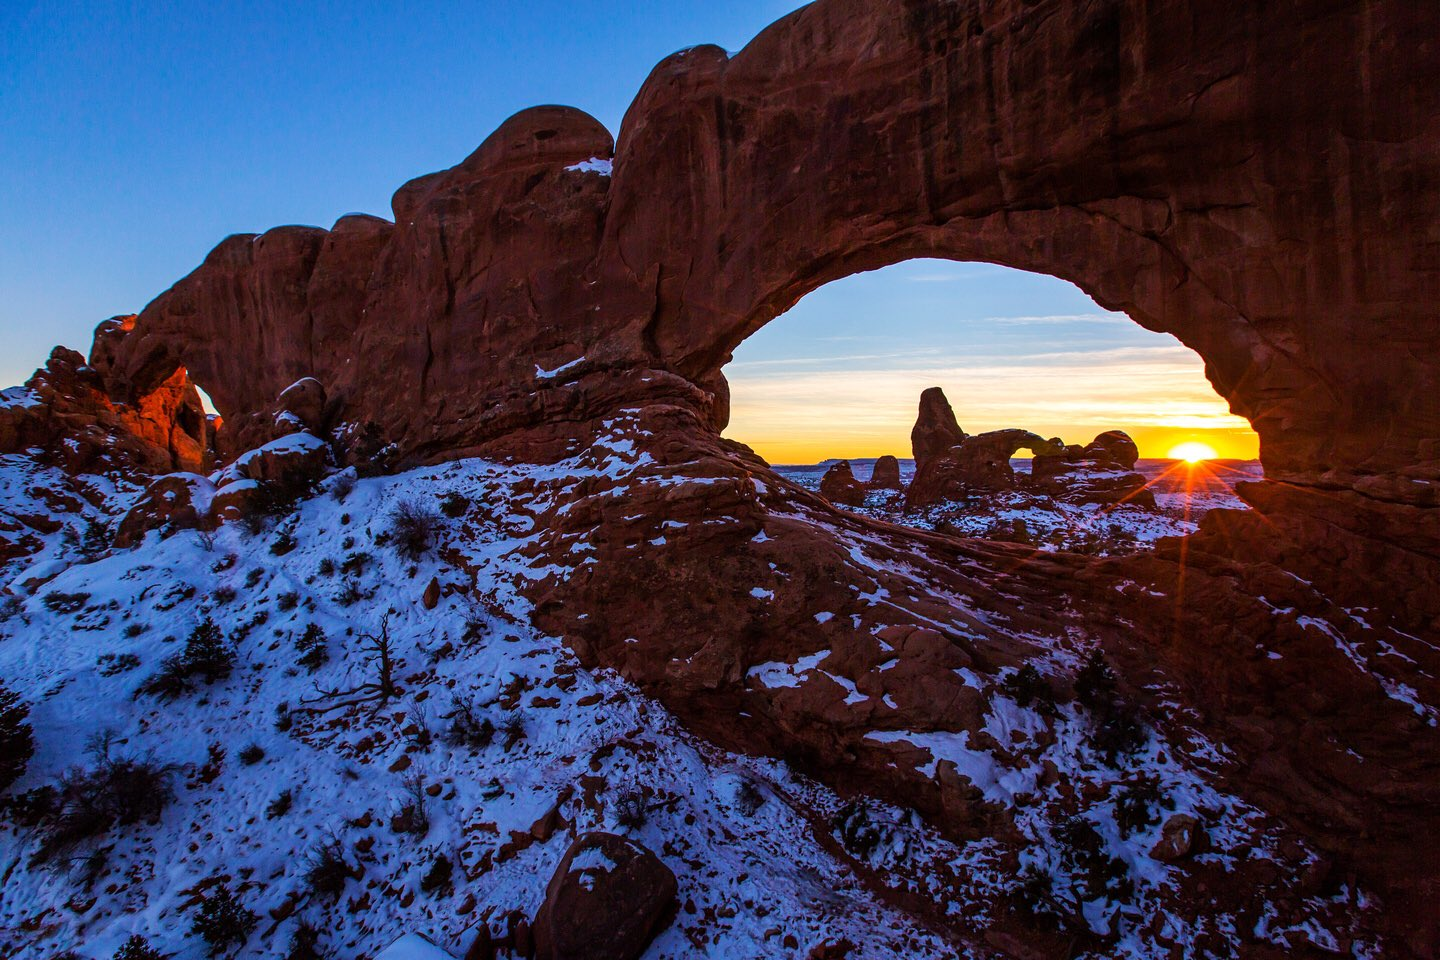 A red-rock arch appears through an arch with snow on the ground